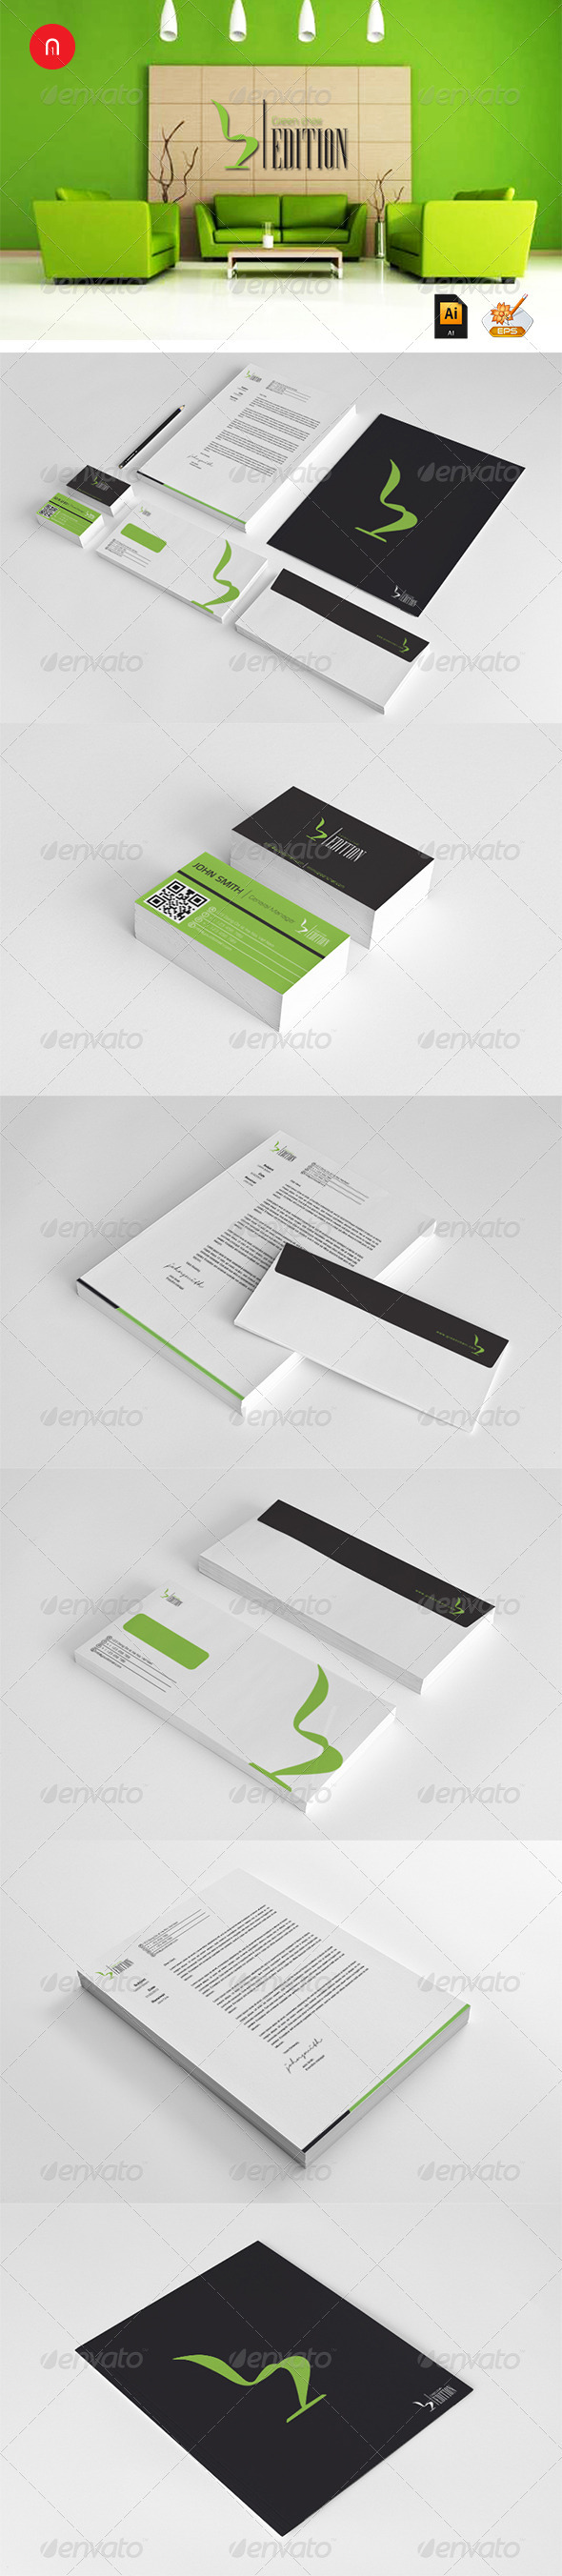 Green Chair Corporate Design - Stationery Print Templates